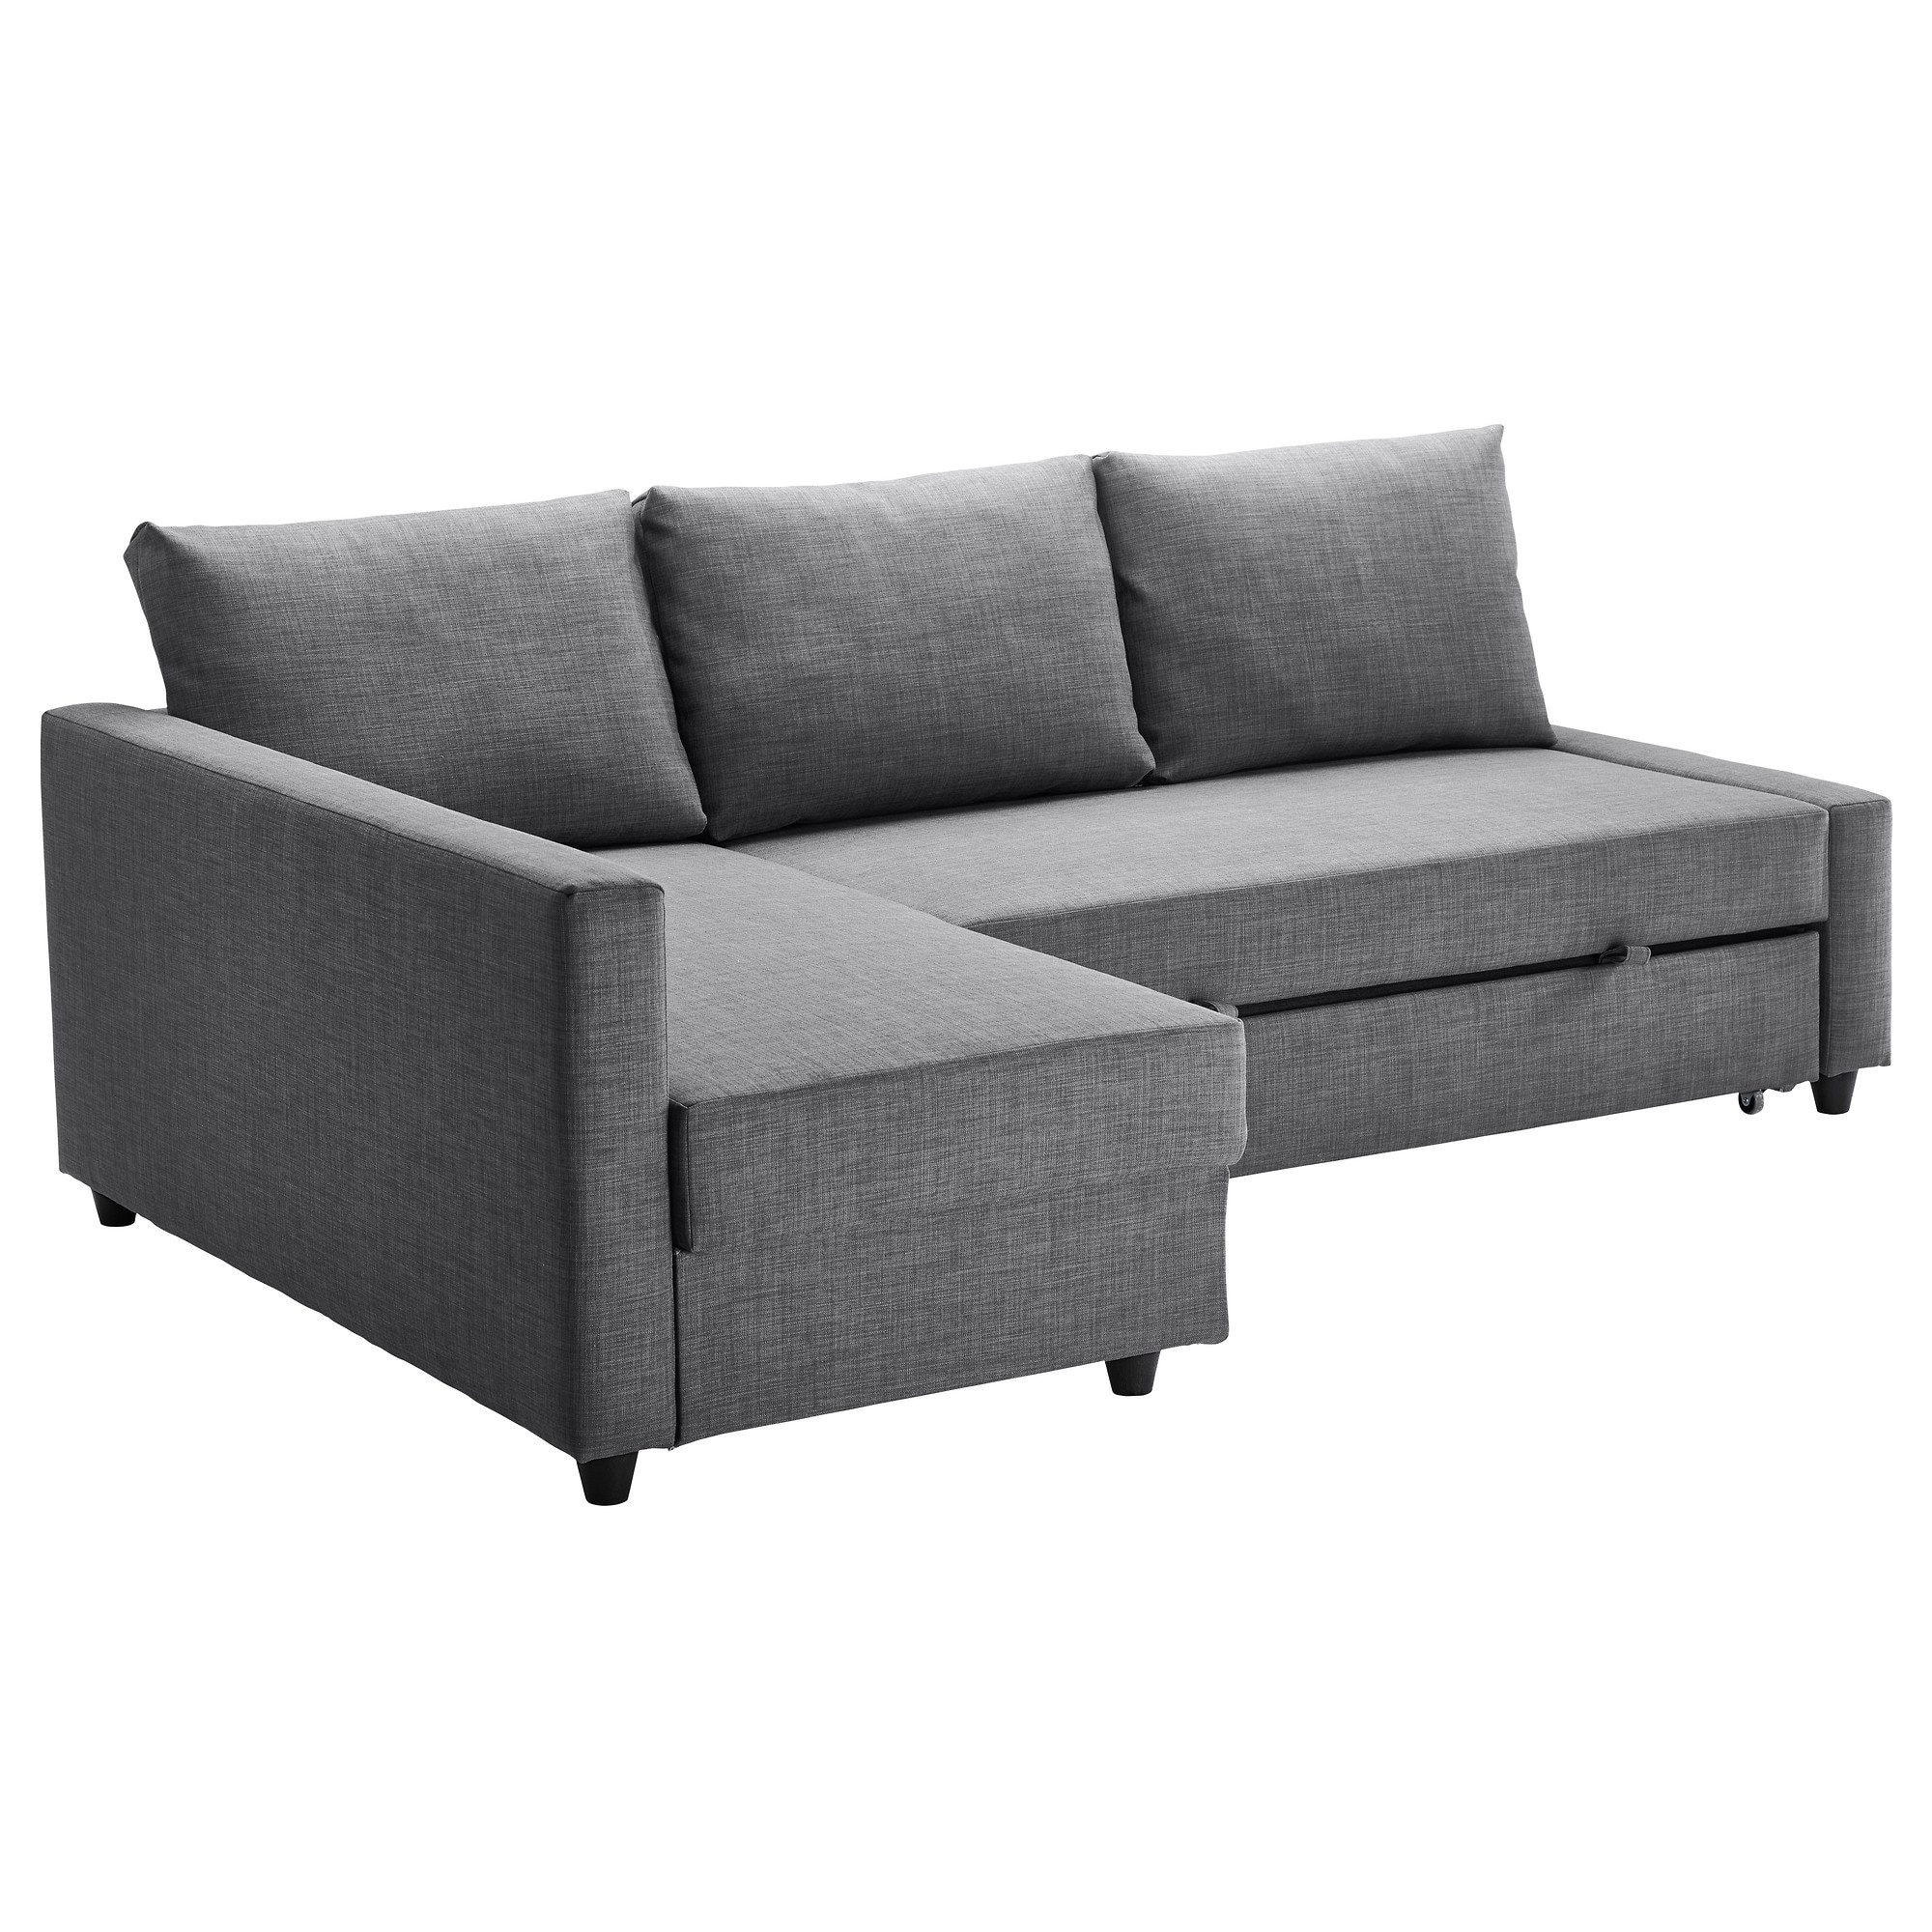 Taren Reversible Sofa/chaise Sleeper Sectionals With Storage Ottoman With Regard To Current Best Of Sleeper Chaise Sofa – Buildsimplehome (Gallery 12 of 20)